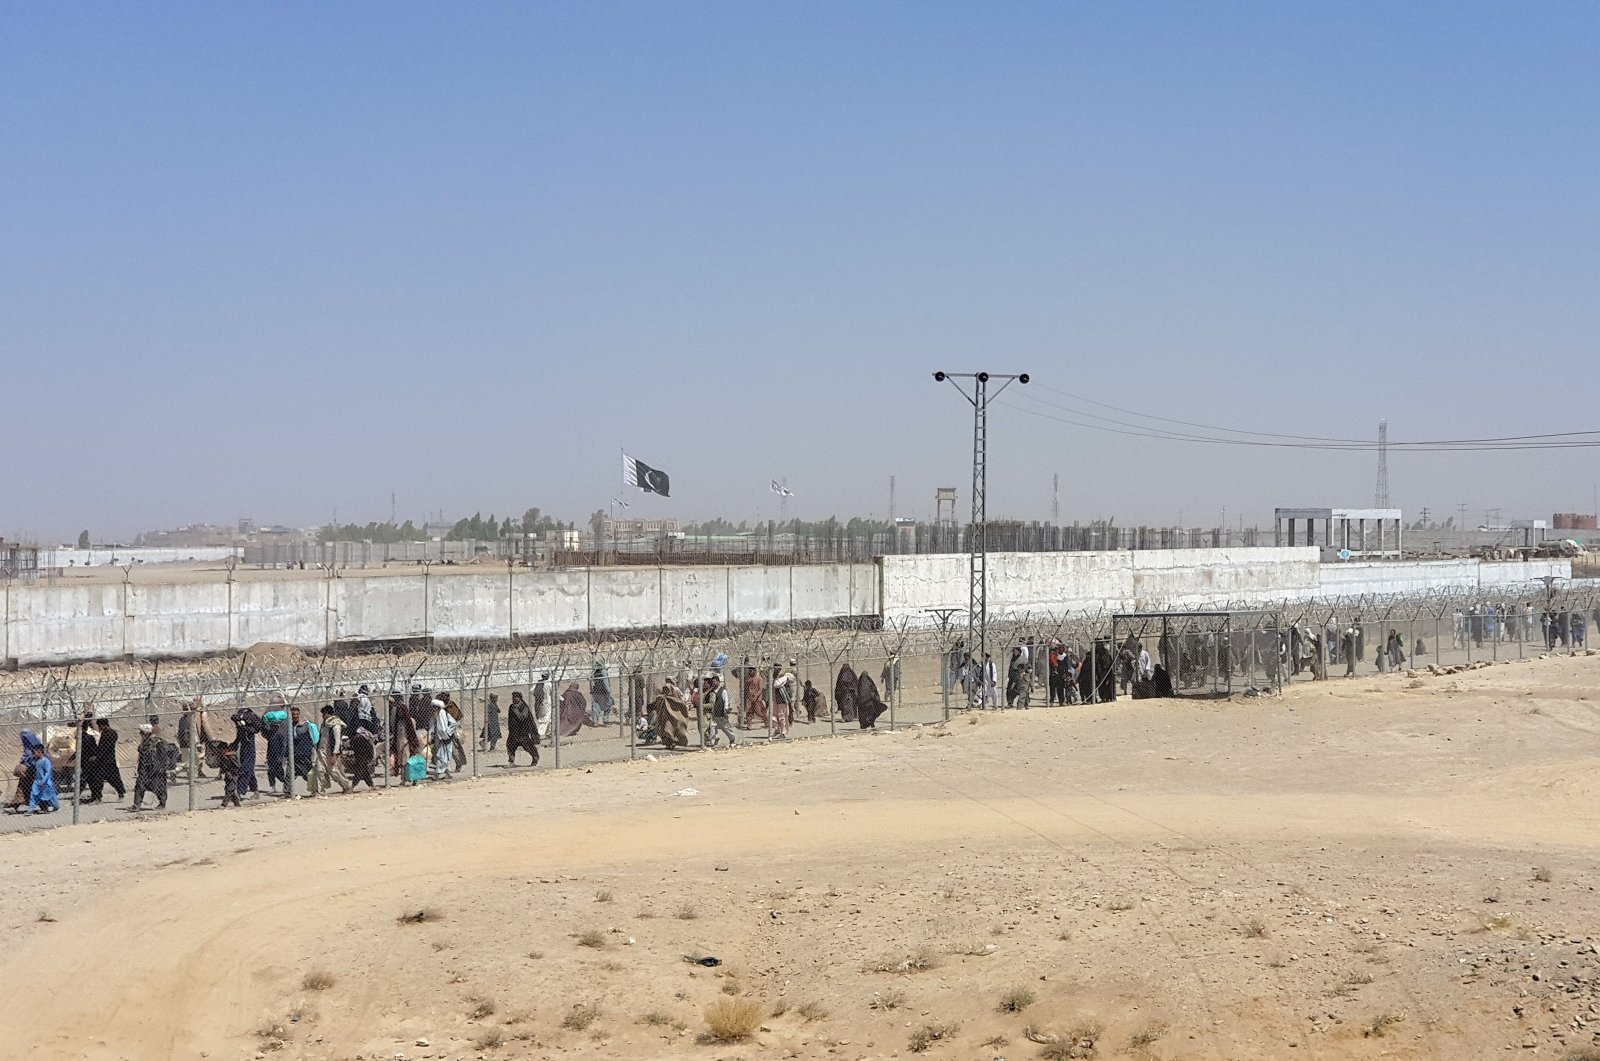 People arriving from Afghanistan cross the fence at the Friendship Gate crossing point, in the Pakistan-Afghanistan border town of Chaman, Pakistan, Aug. 18, 2021. (REUTERS)